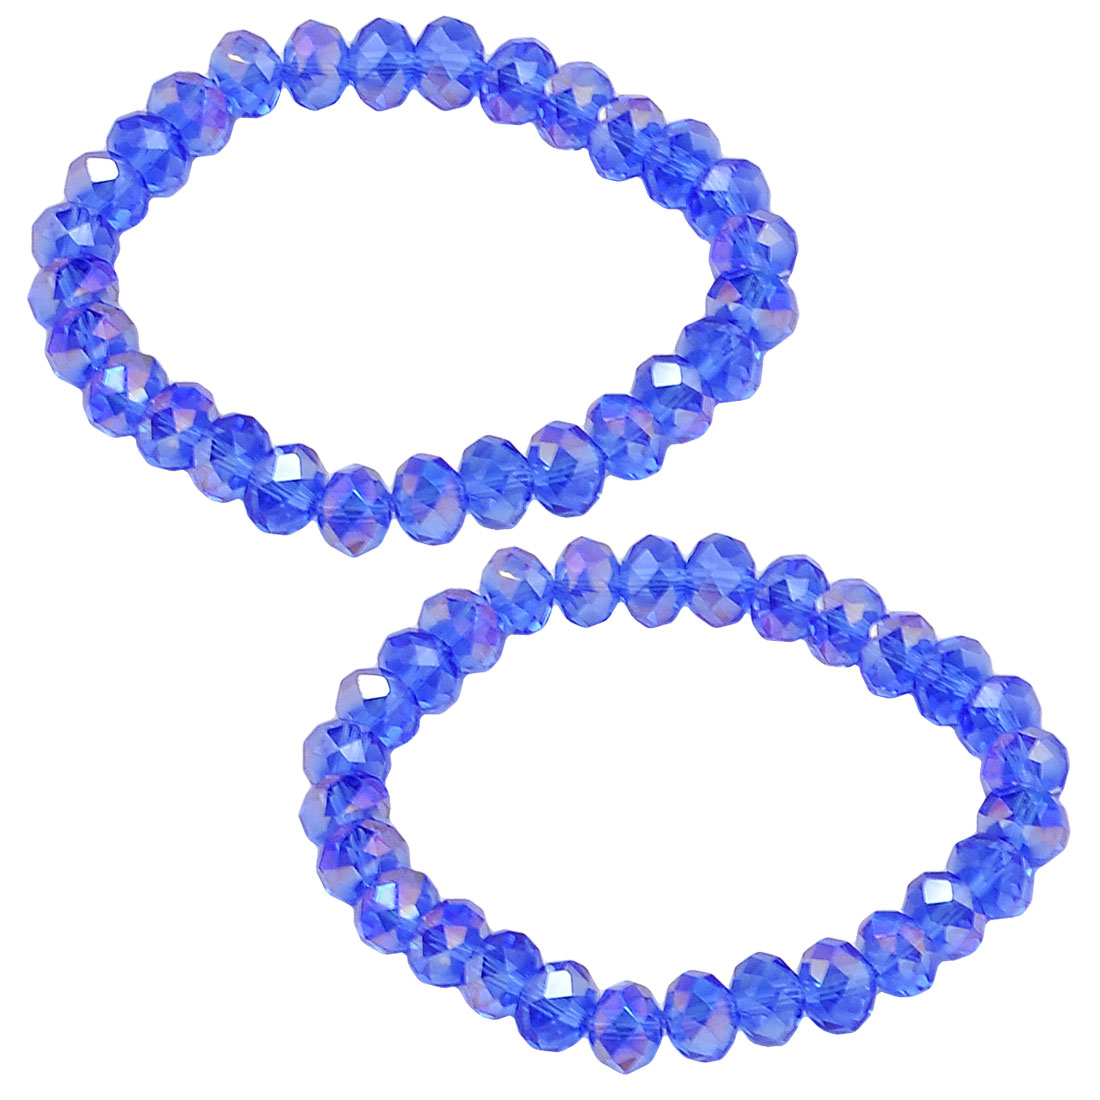 2 Pcs Lady 8mm Dia Plastic Crystal Beads Stretch Bracelets Bangle Blue